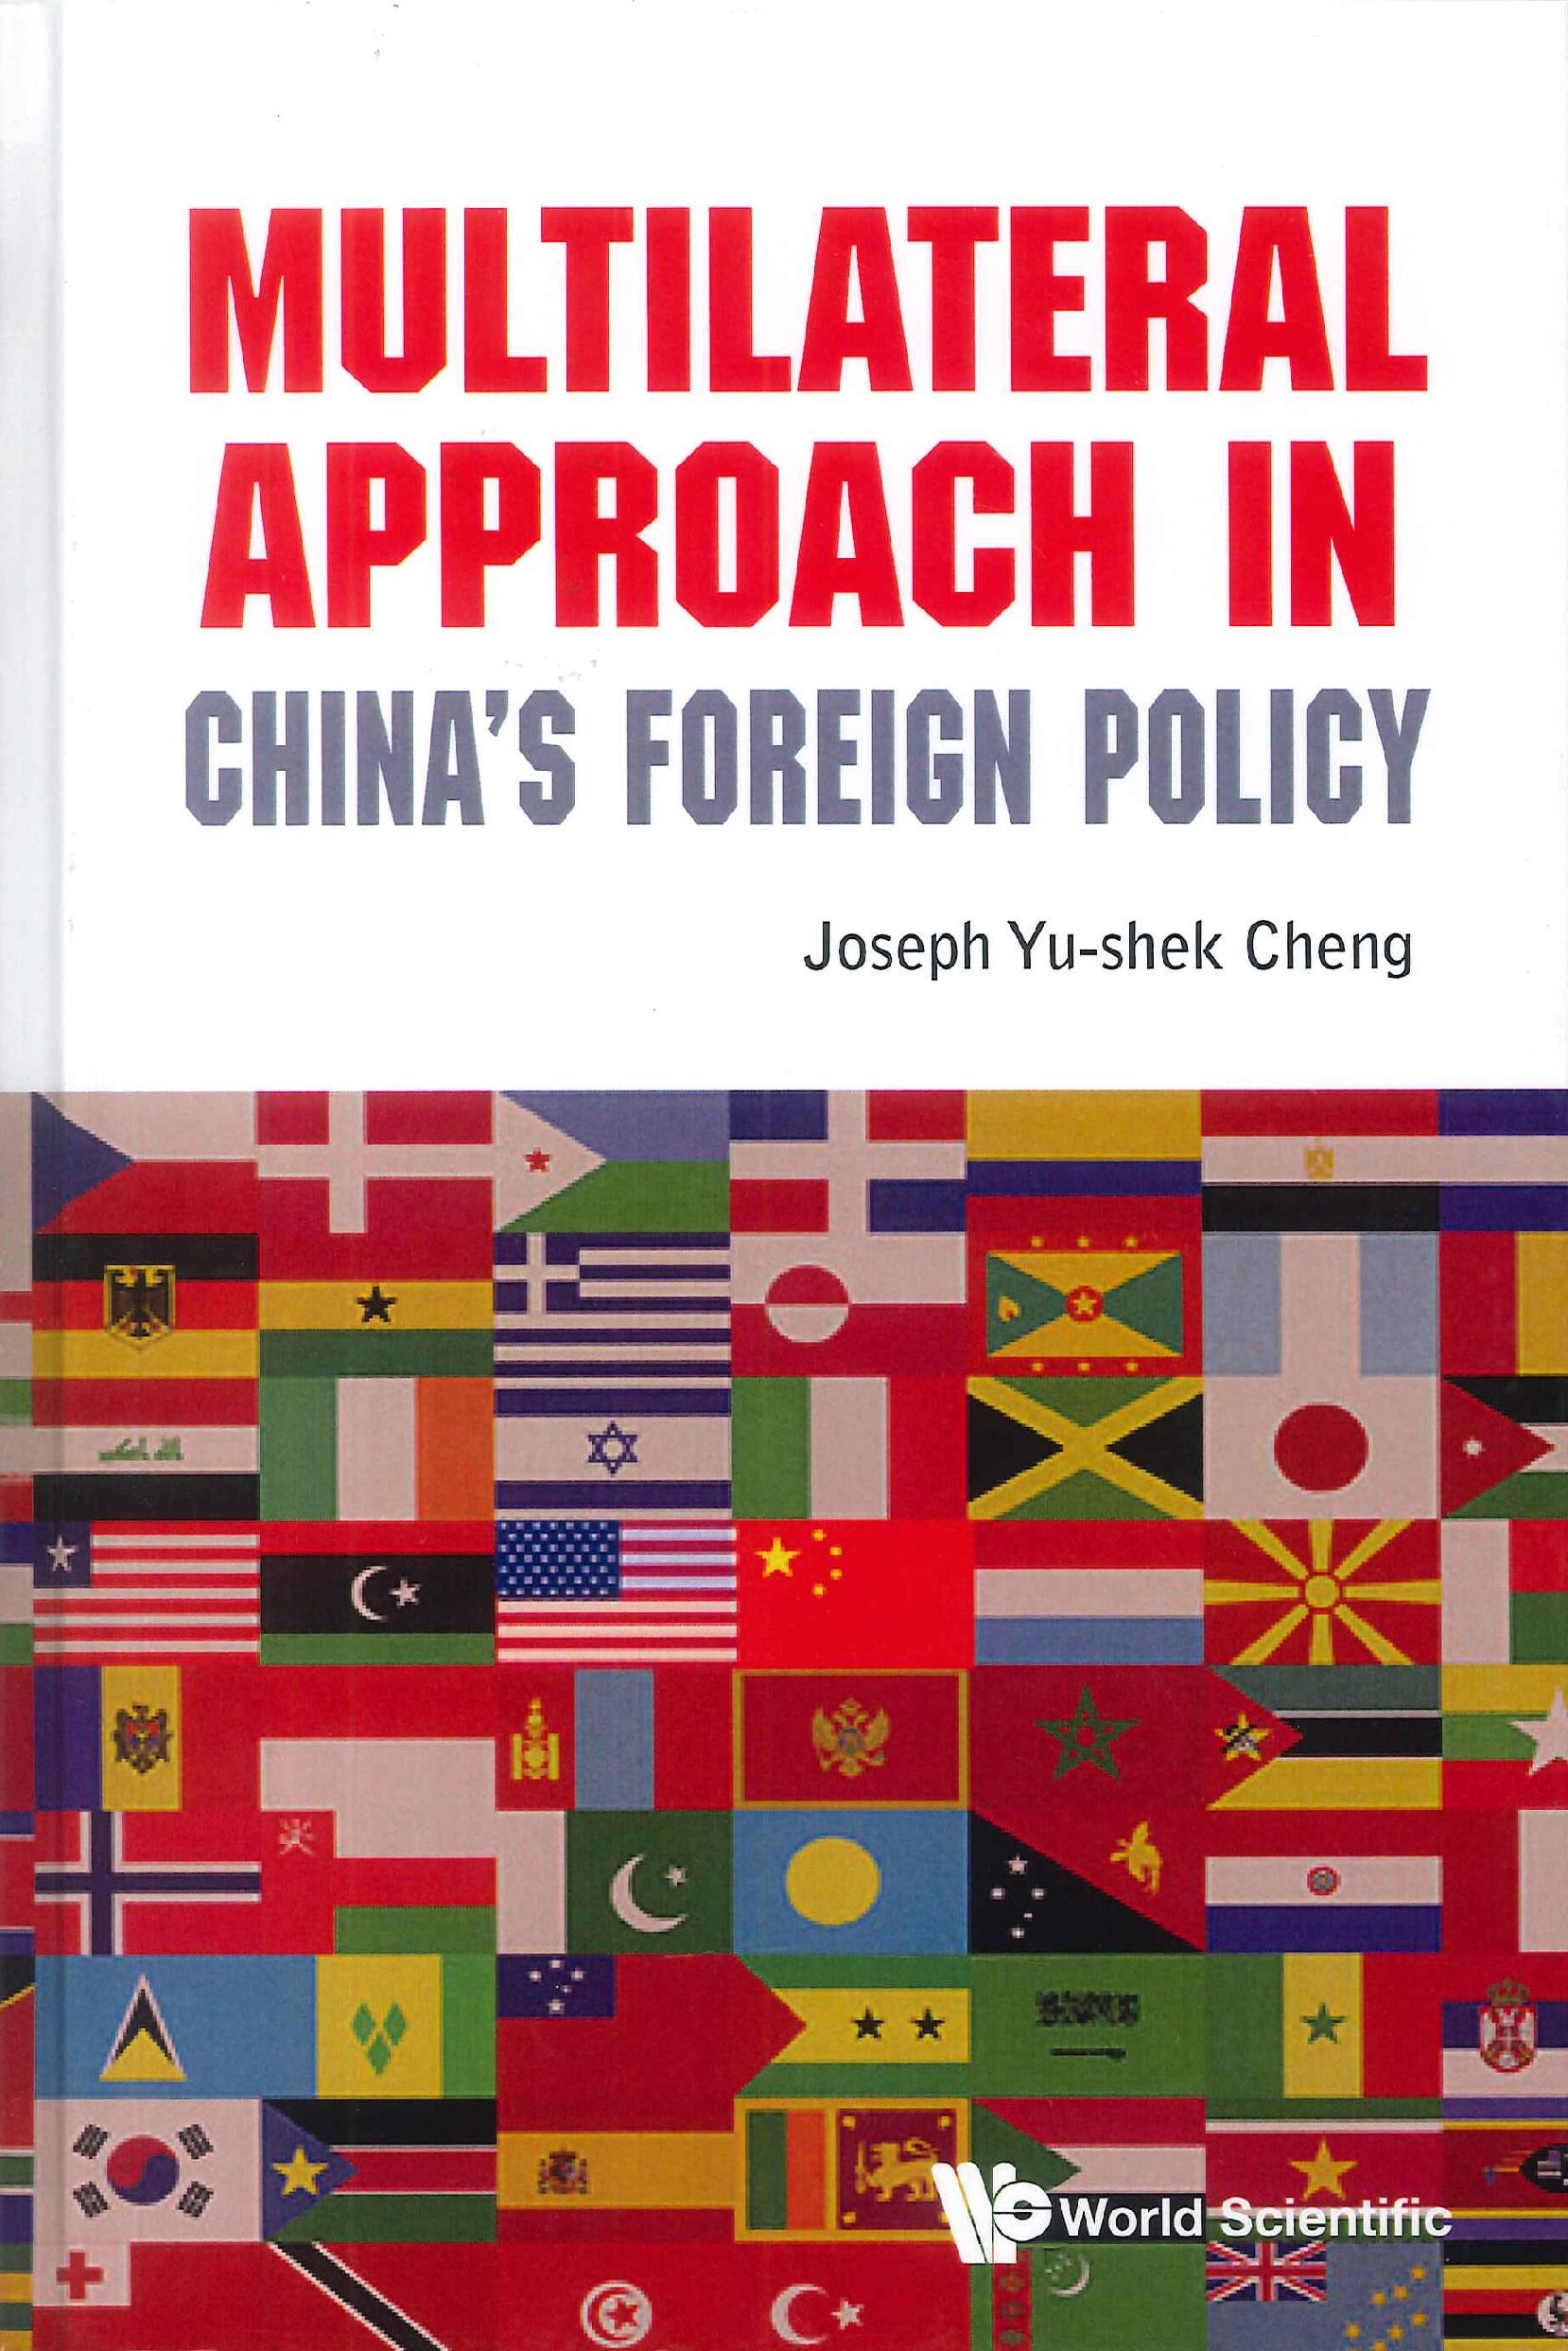 Multilateral approach in China